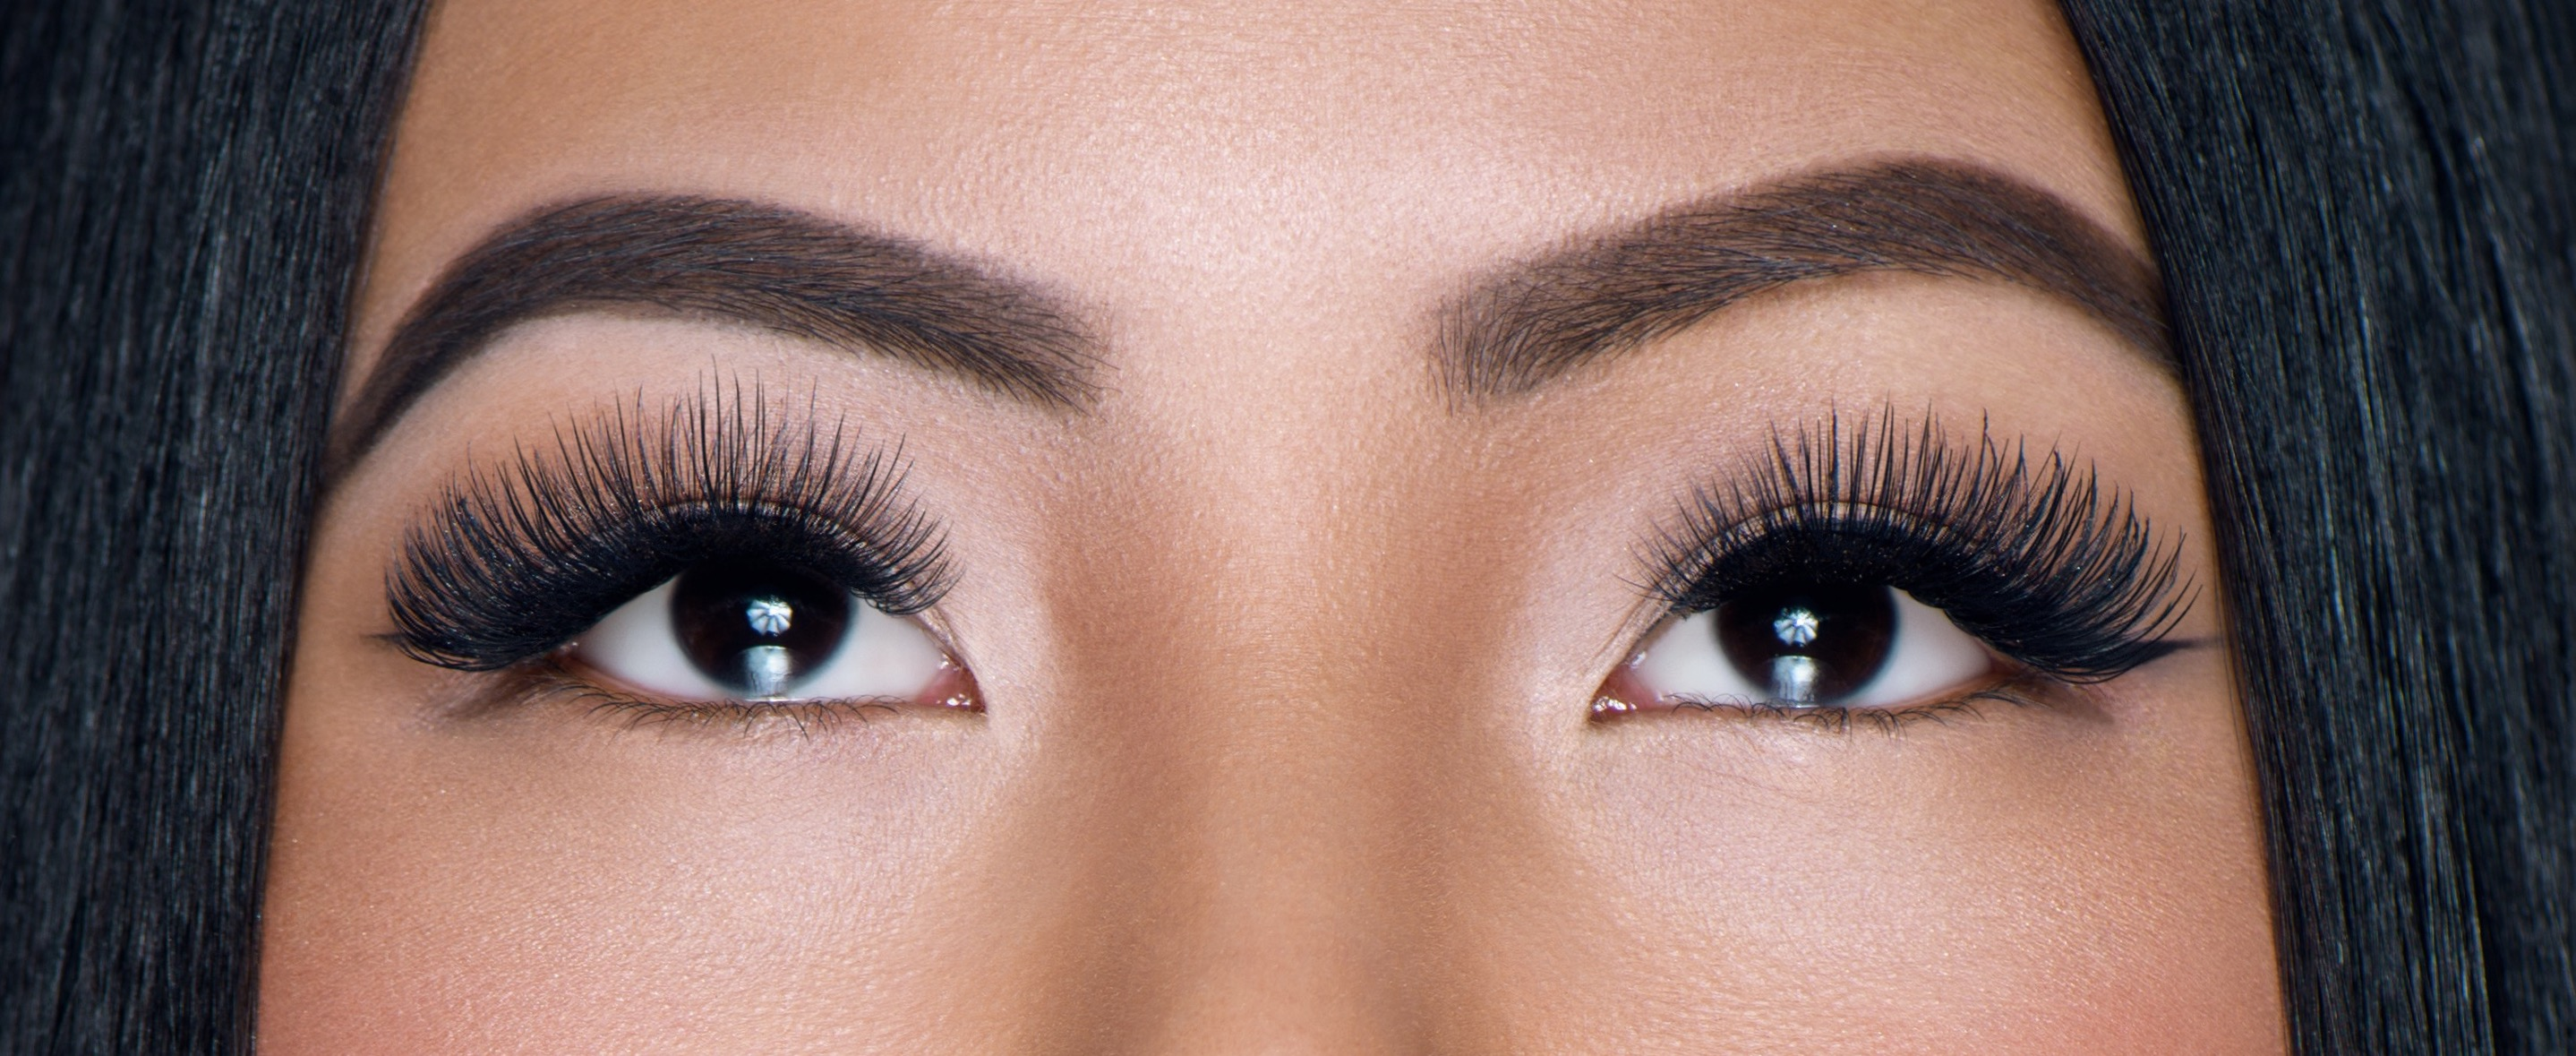 Blog Get Tips About Our Eyelash Extensions Cherry Lash